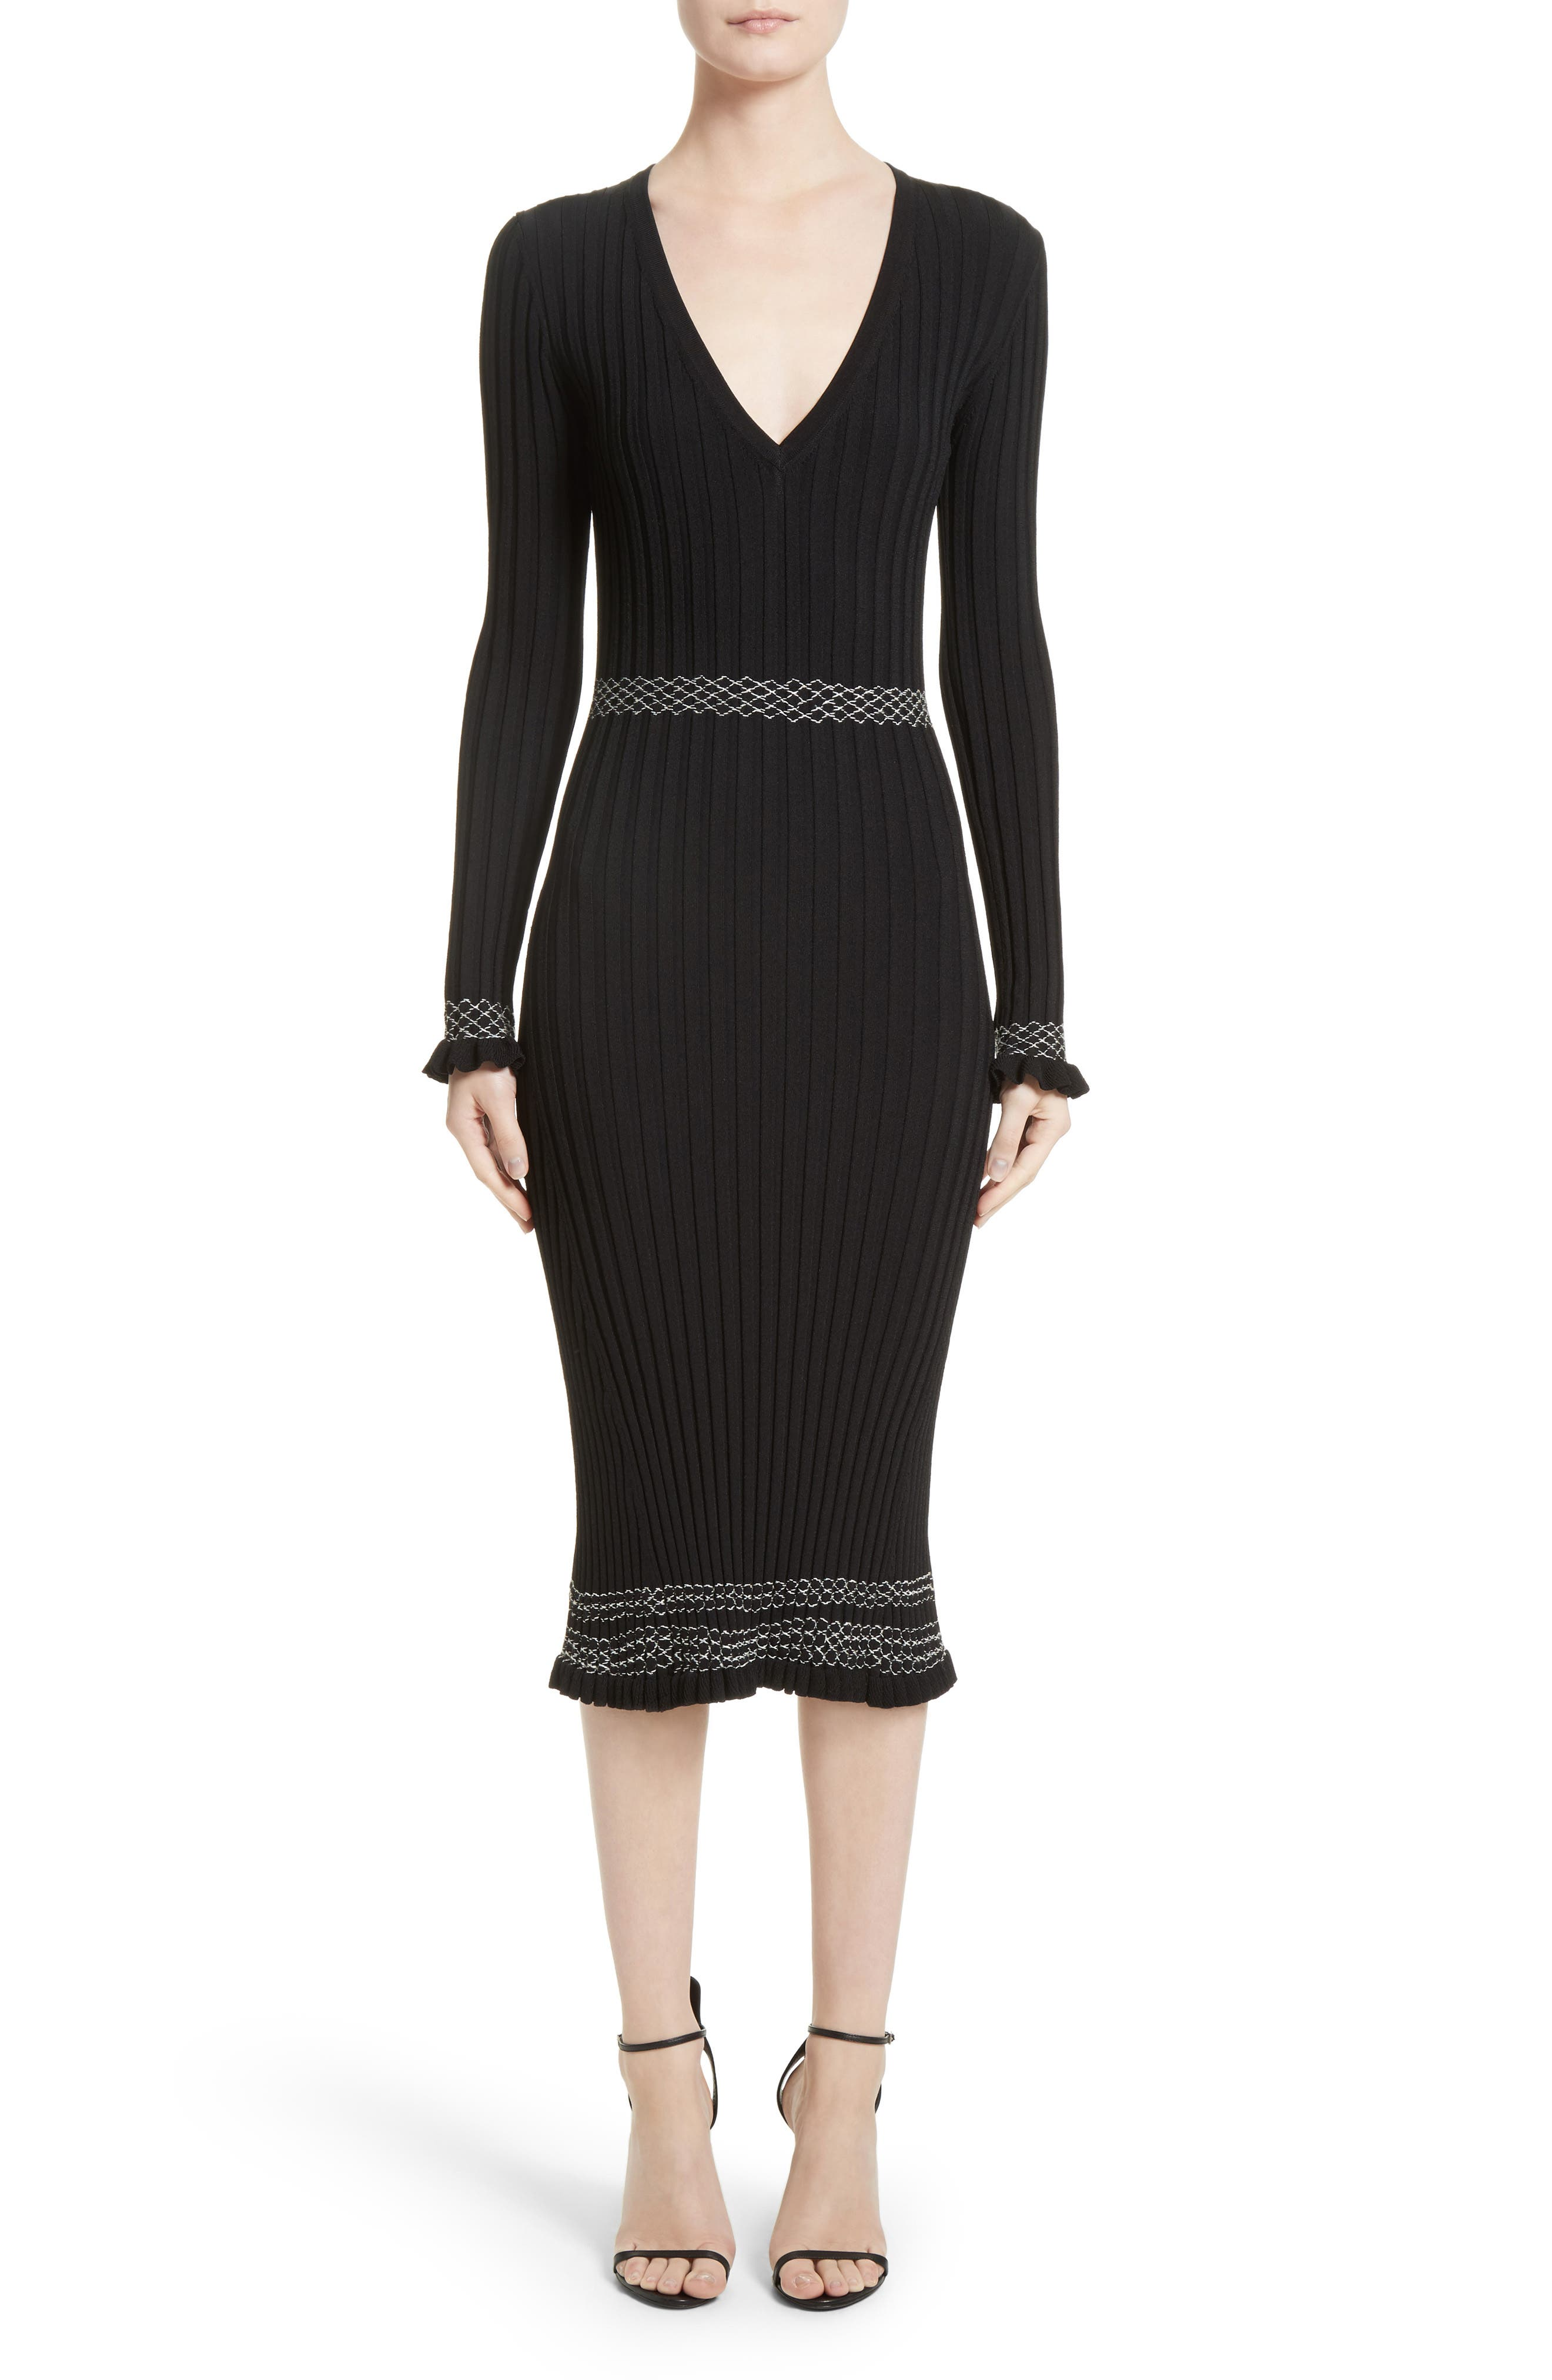 Alternate Image 1 Selected - Altuzarra Ruffle Hem Knit Dress